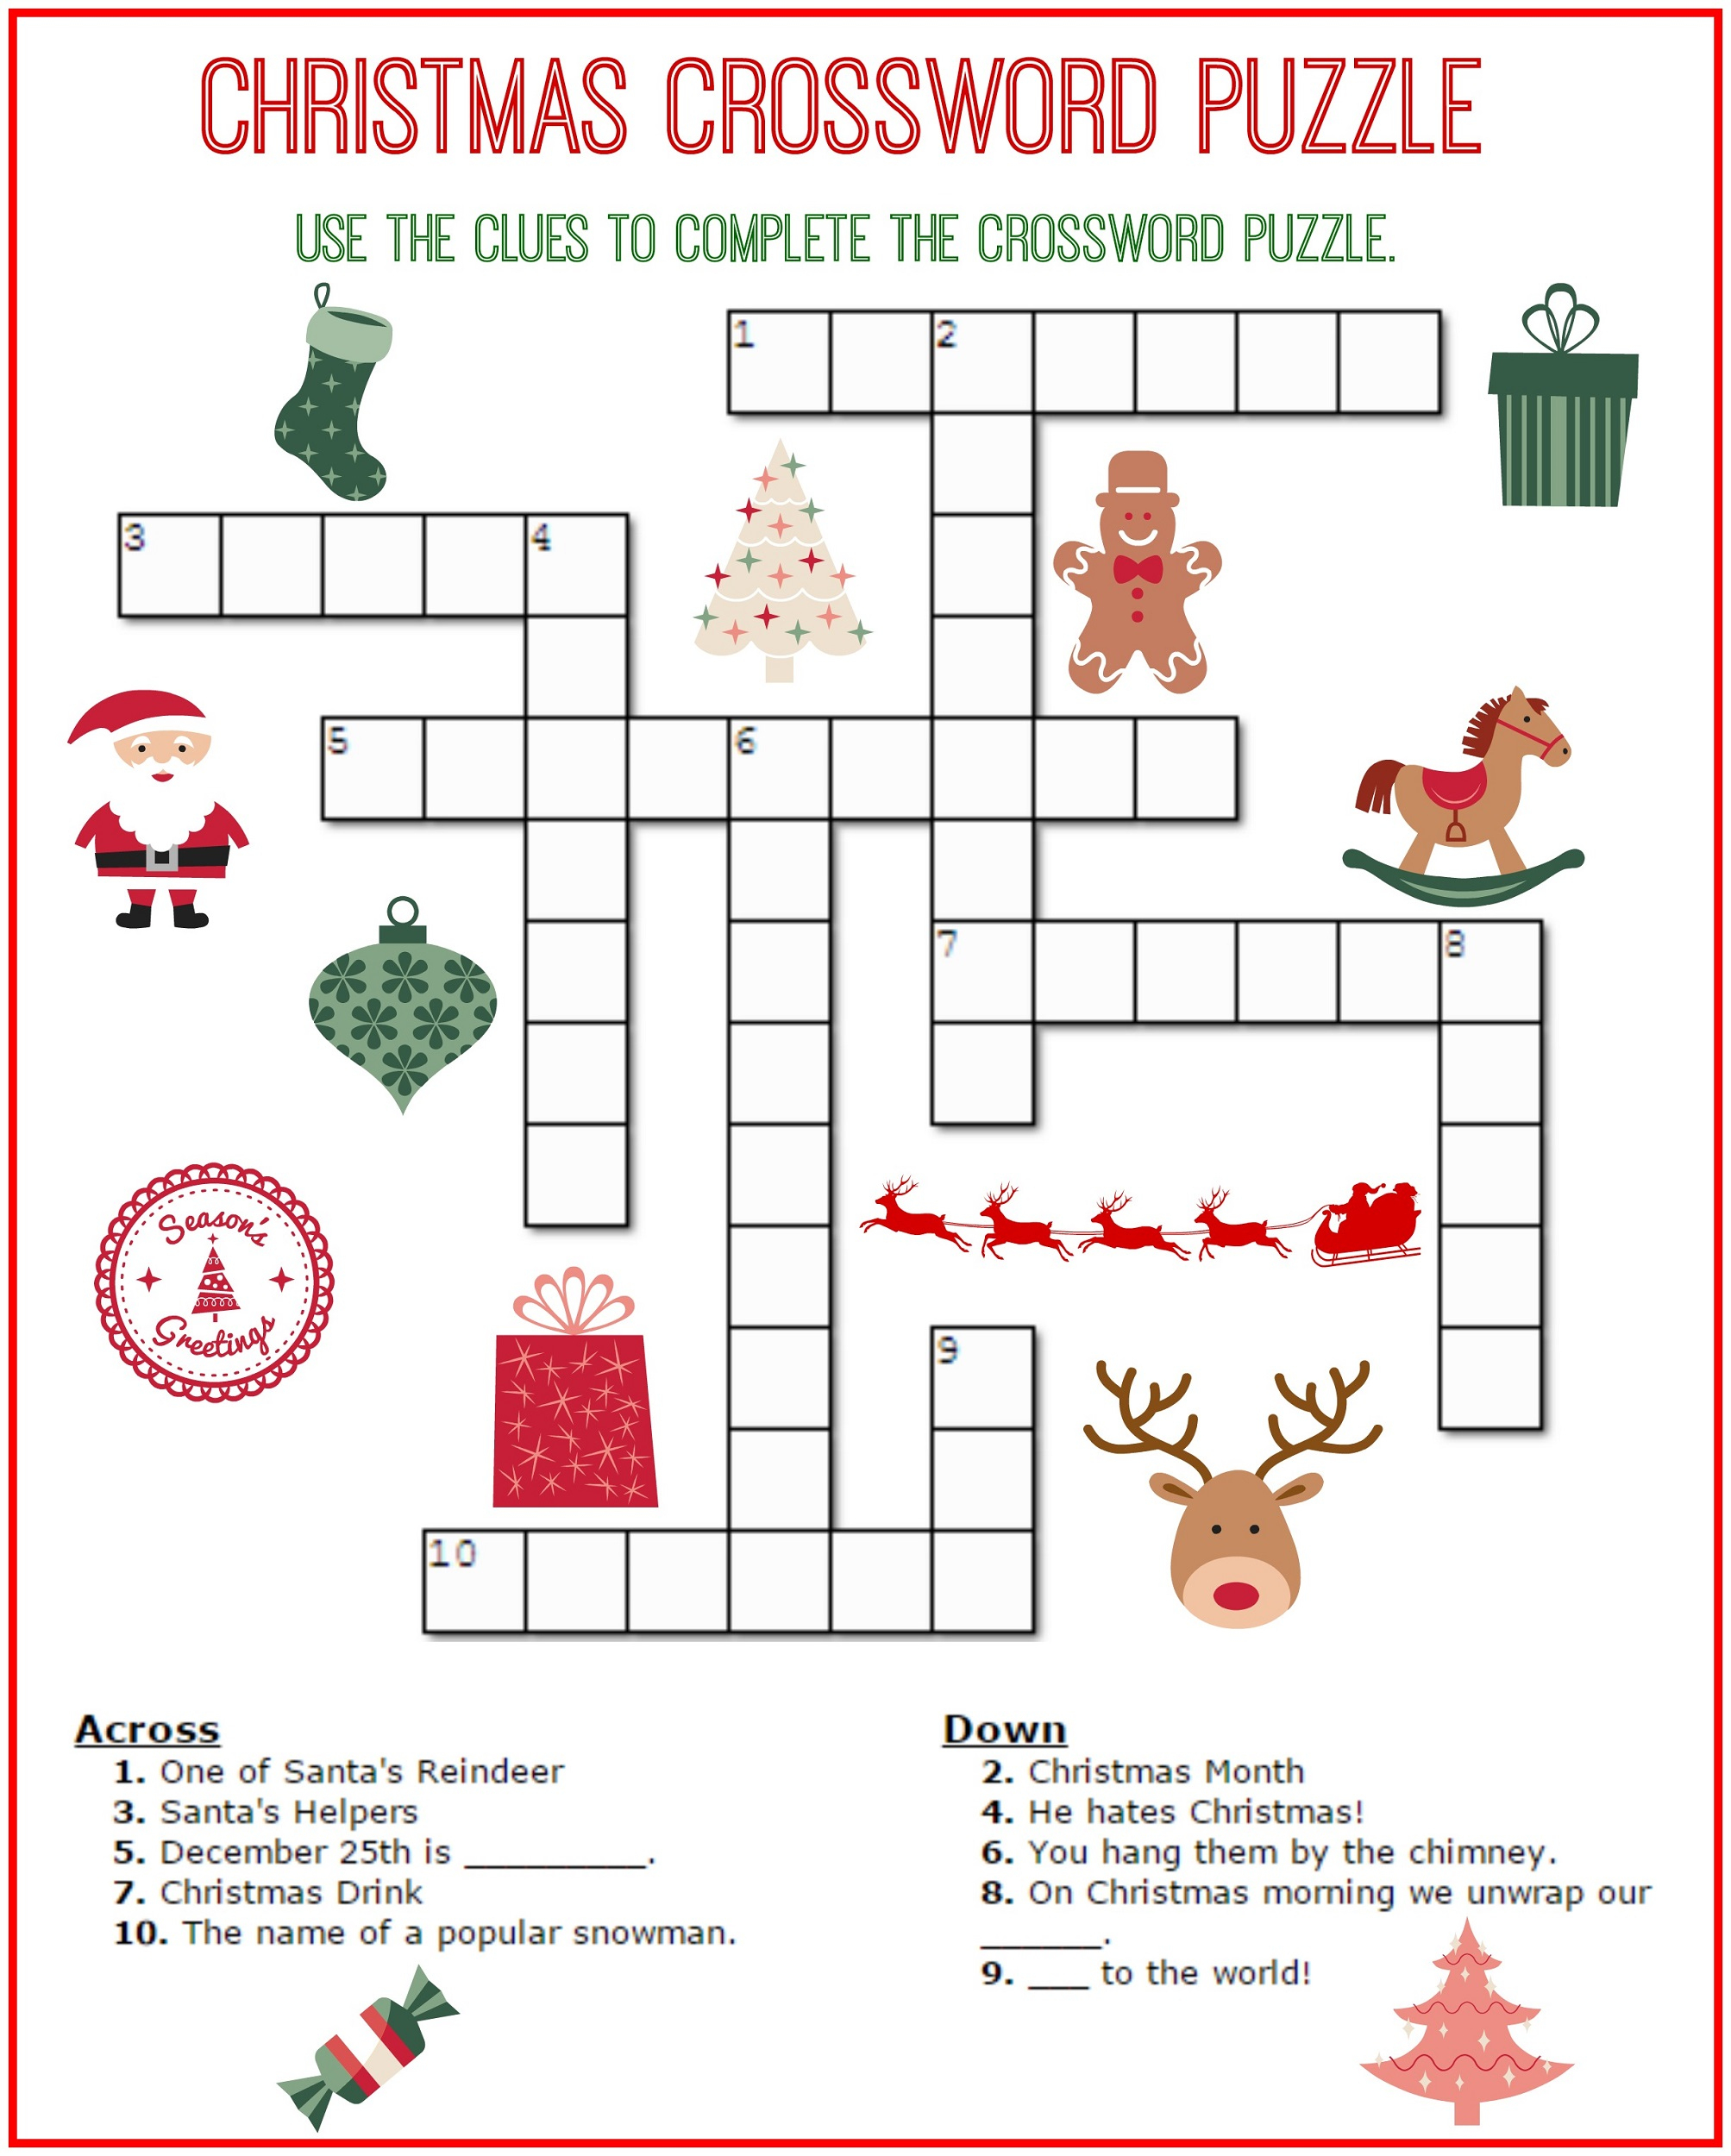 Crossword Puzzle Kids Printable 2017 | Kiddo Shelter - Printable Educational Crossword Puzzles